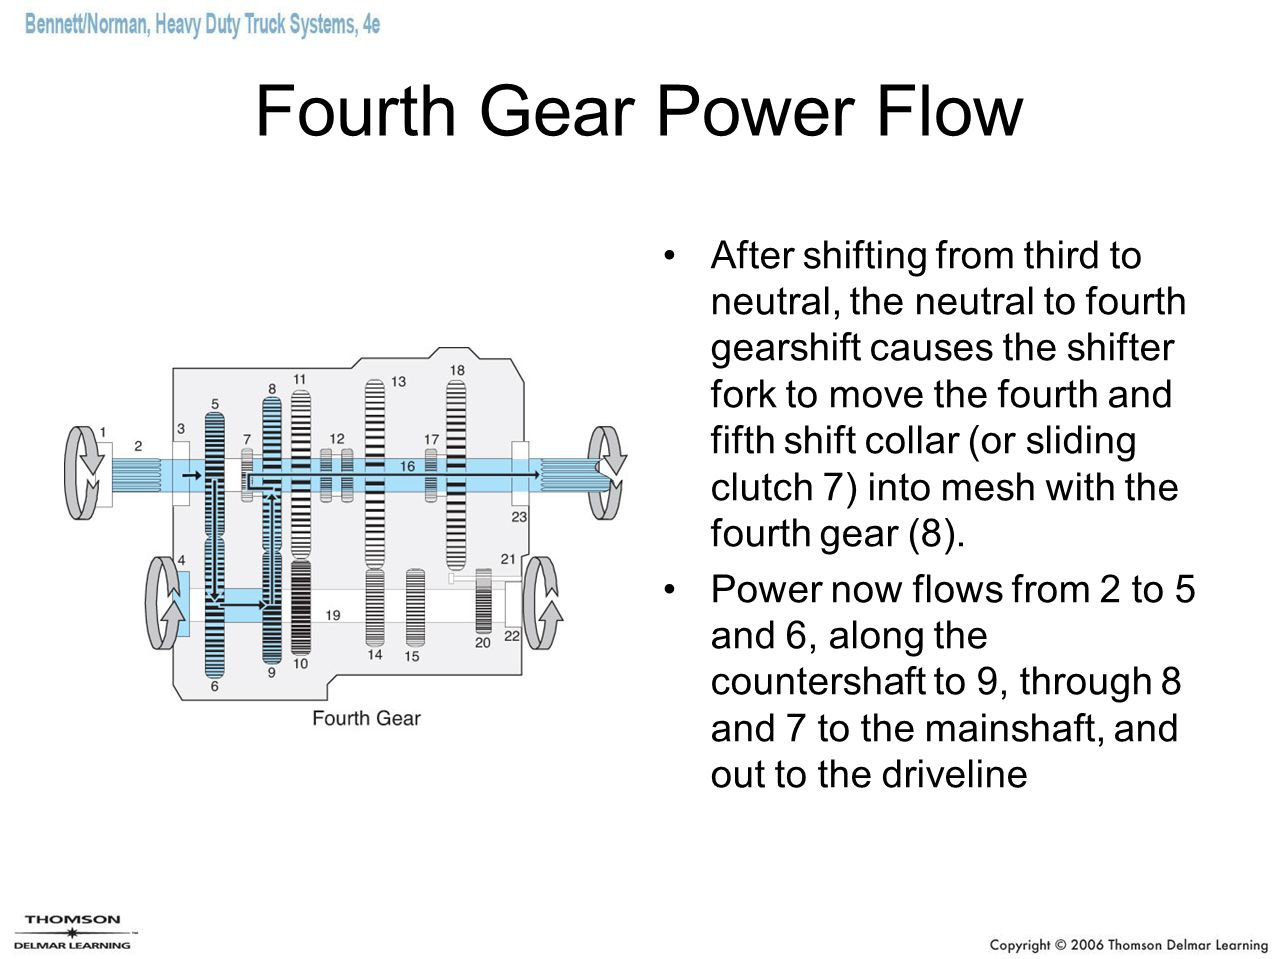 Fourth Gear Power Flow After shifting from third to neutral, the neutral to fourth gearshift causes the shifter fork to move the fourth and fifth shif